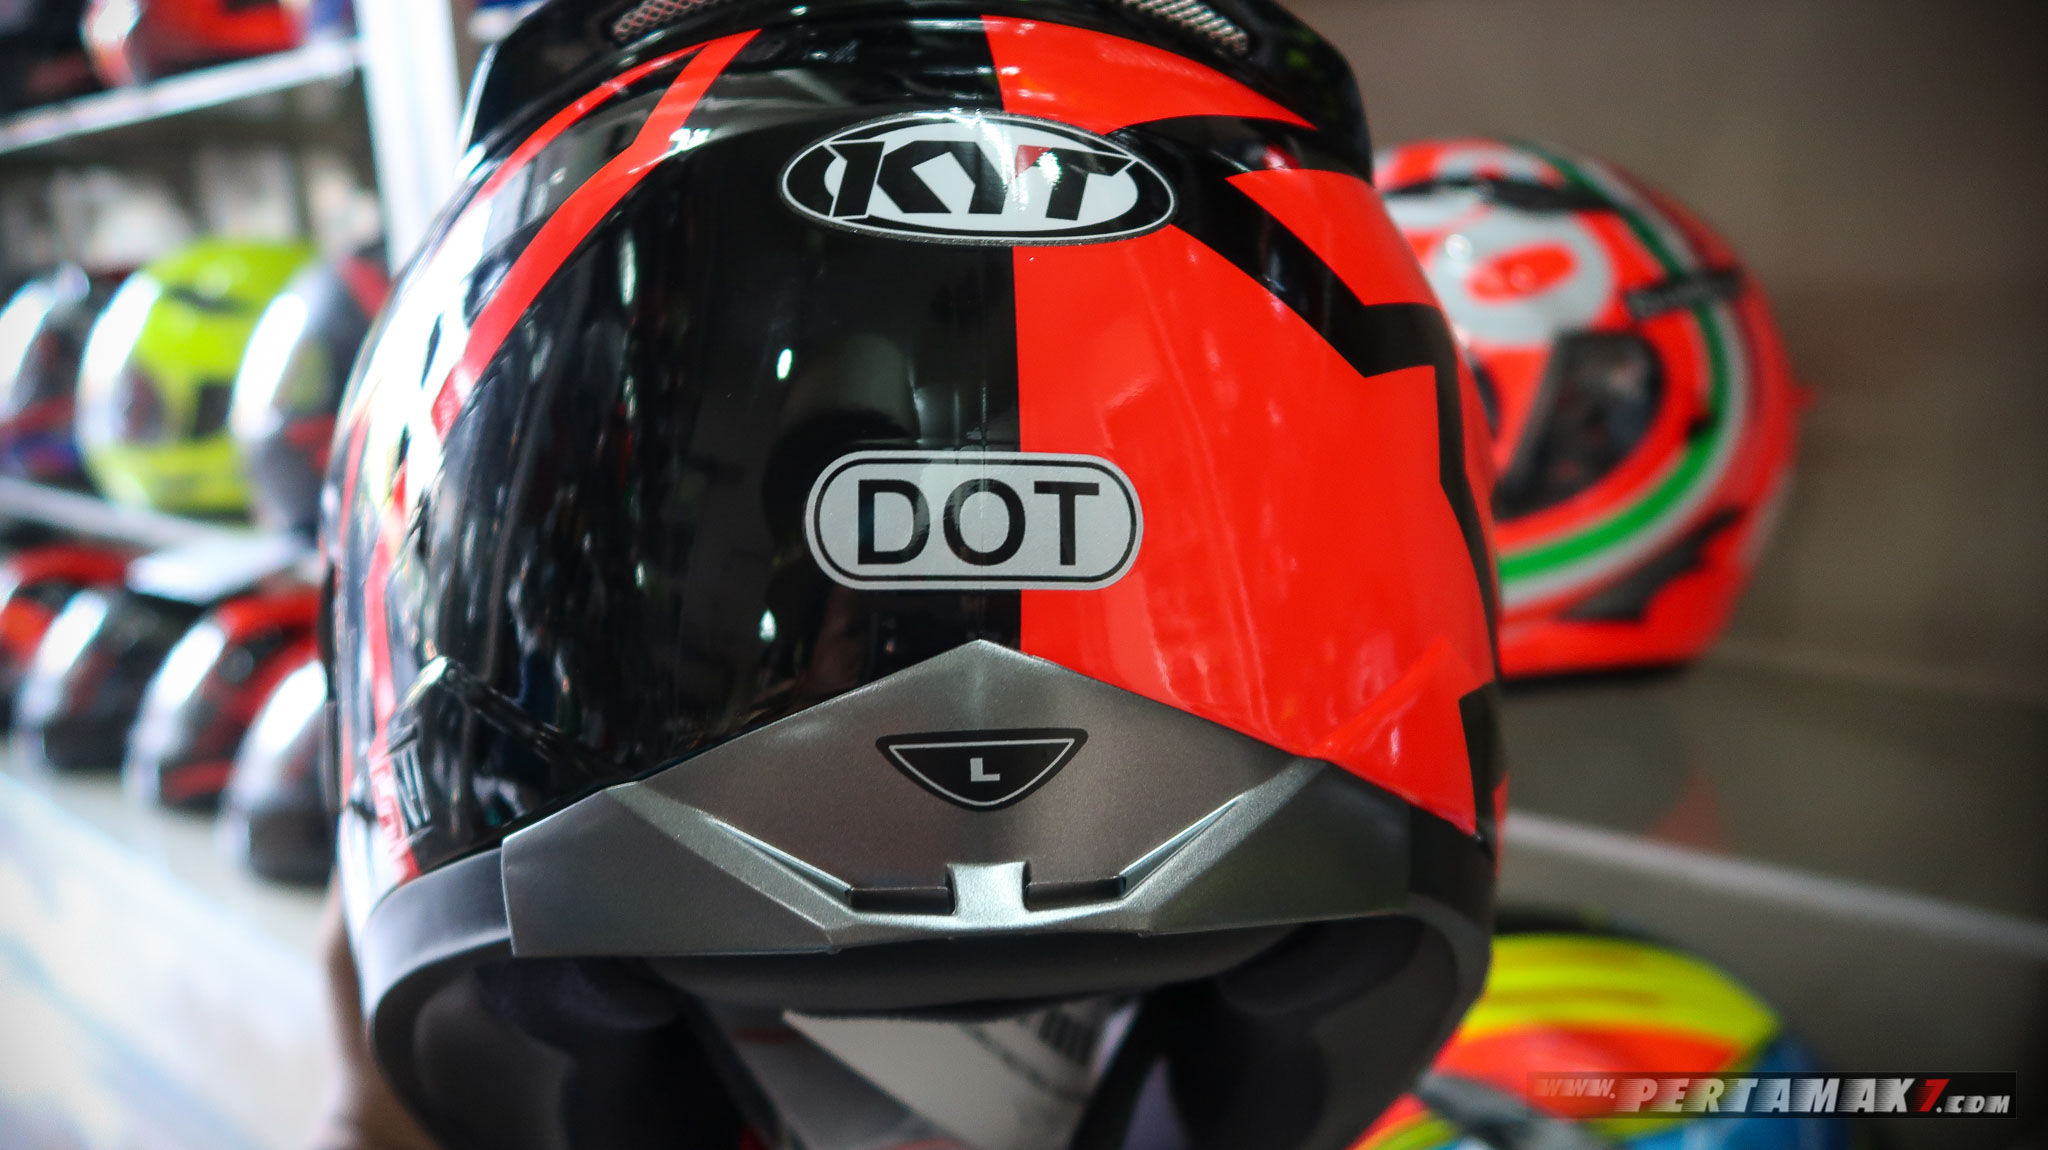 DOT helm KYT Falcon 2 Indonesia Pertamax7